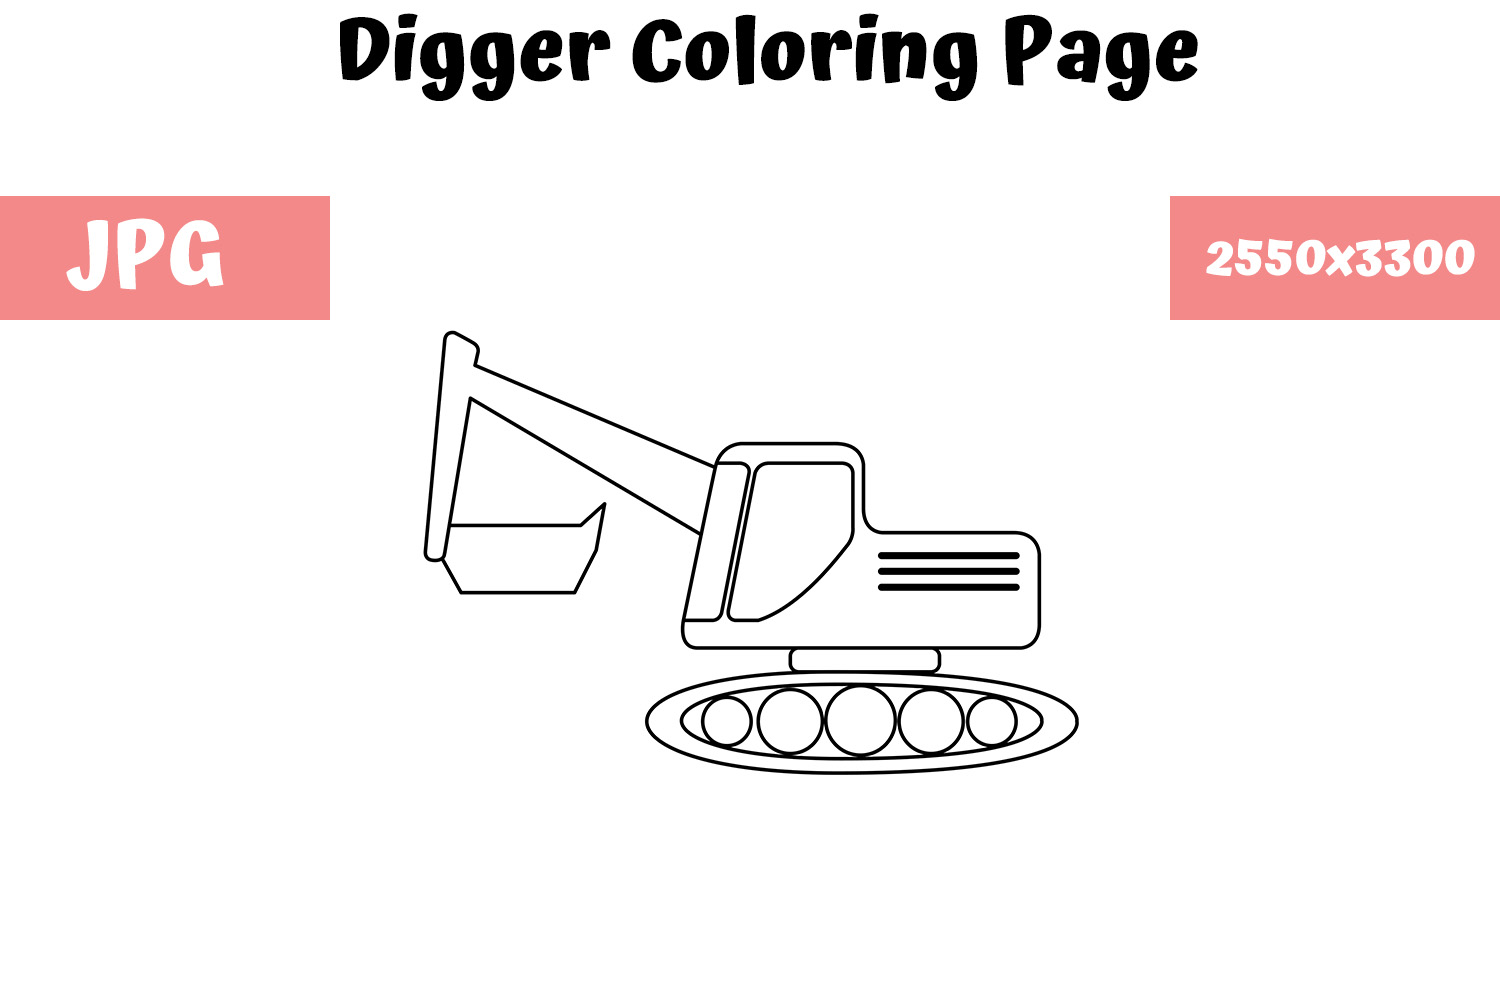 Download Free Digger Coloring Page For Kids Graphic By Mybeautifulfiles for Cricut Explore, Silhouette and other cutting machines.